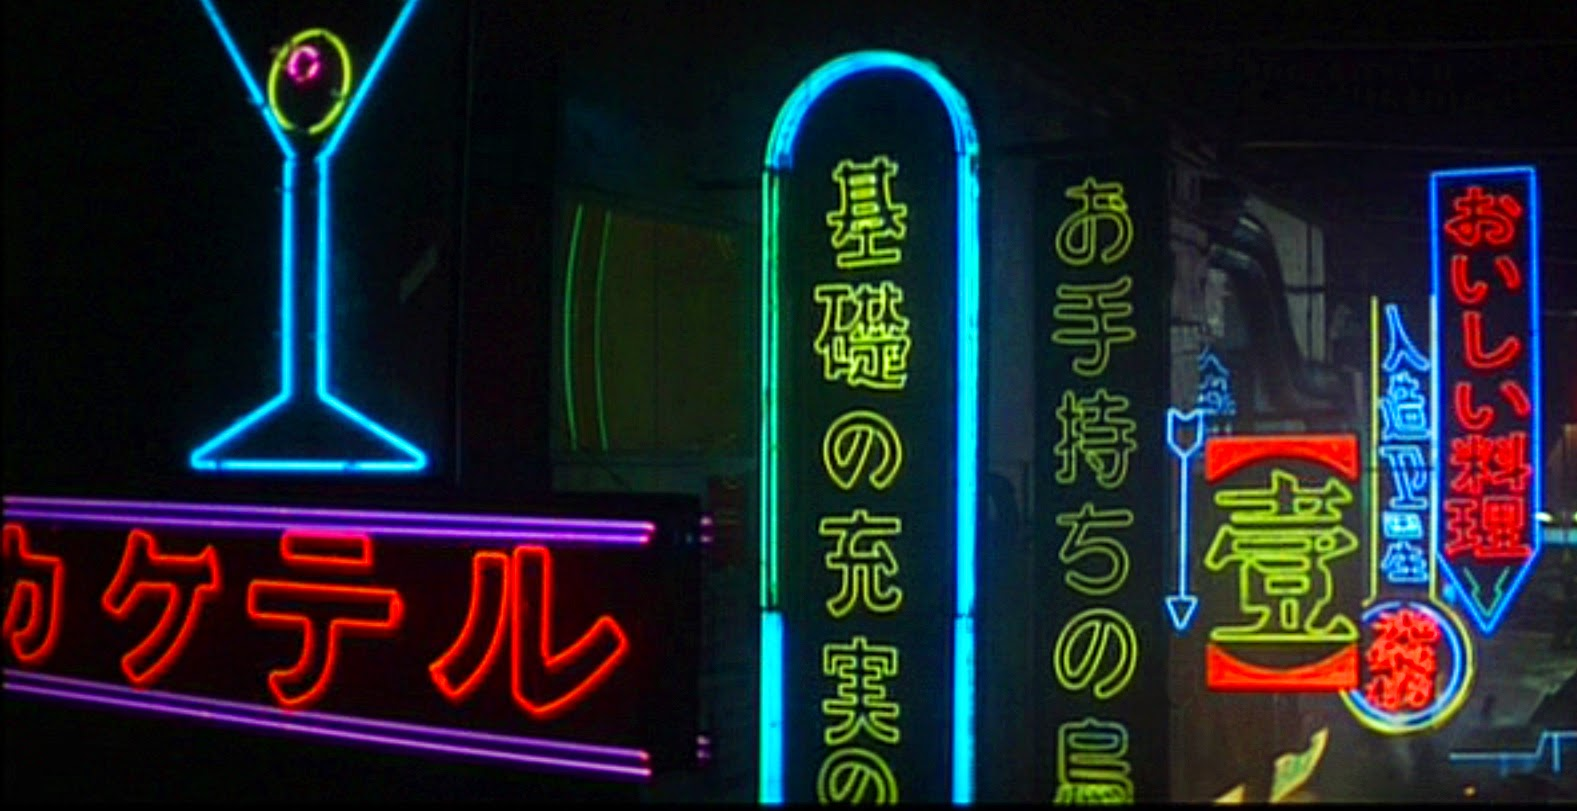 Neato Coolville NEON SIGNS OF BLADE RUNNER